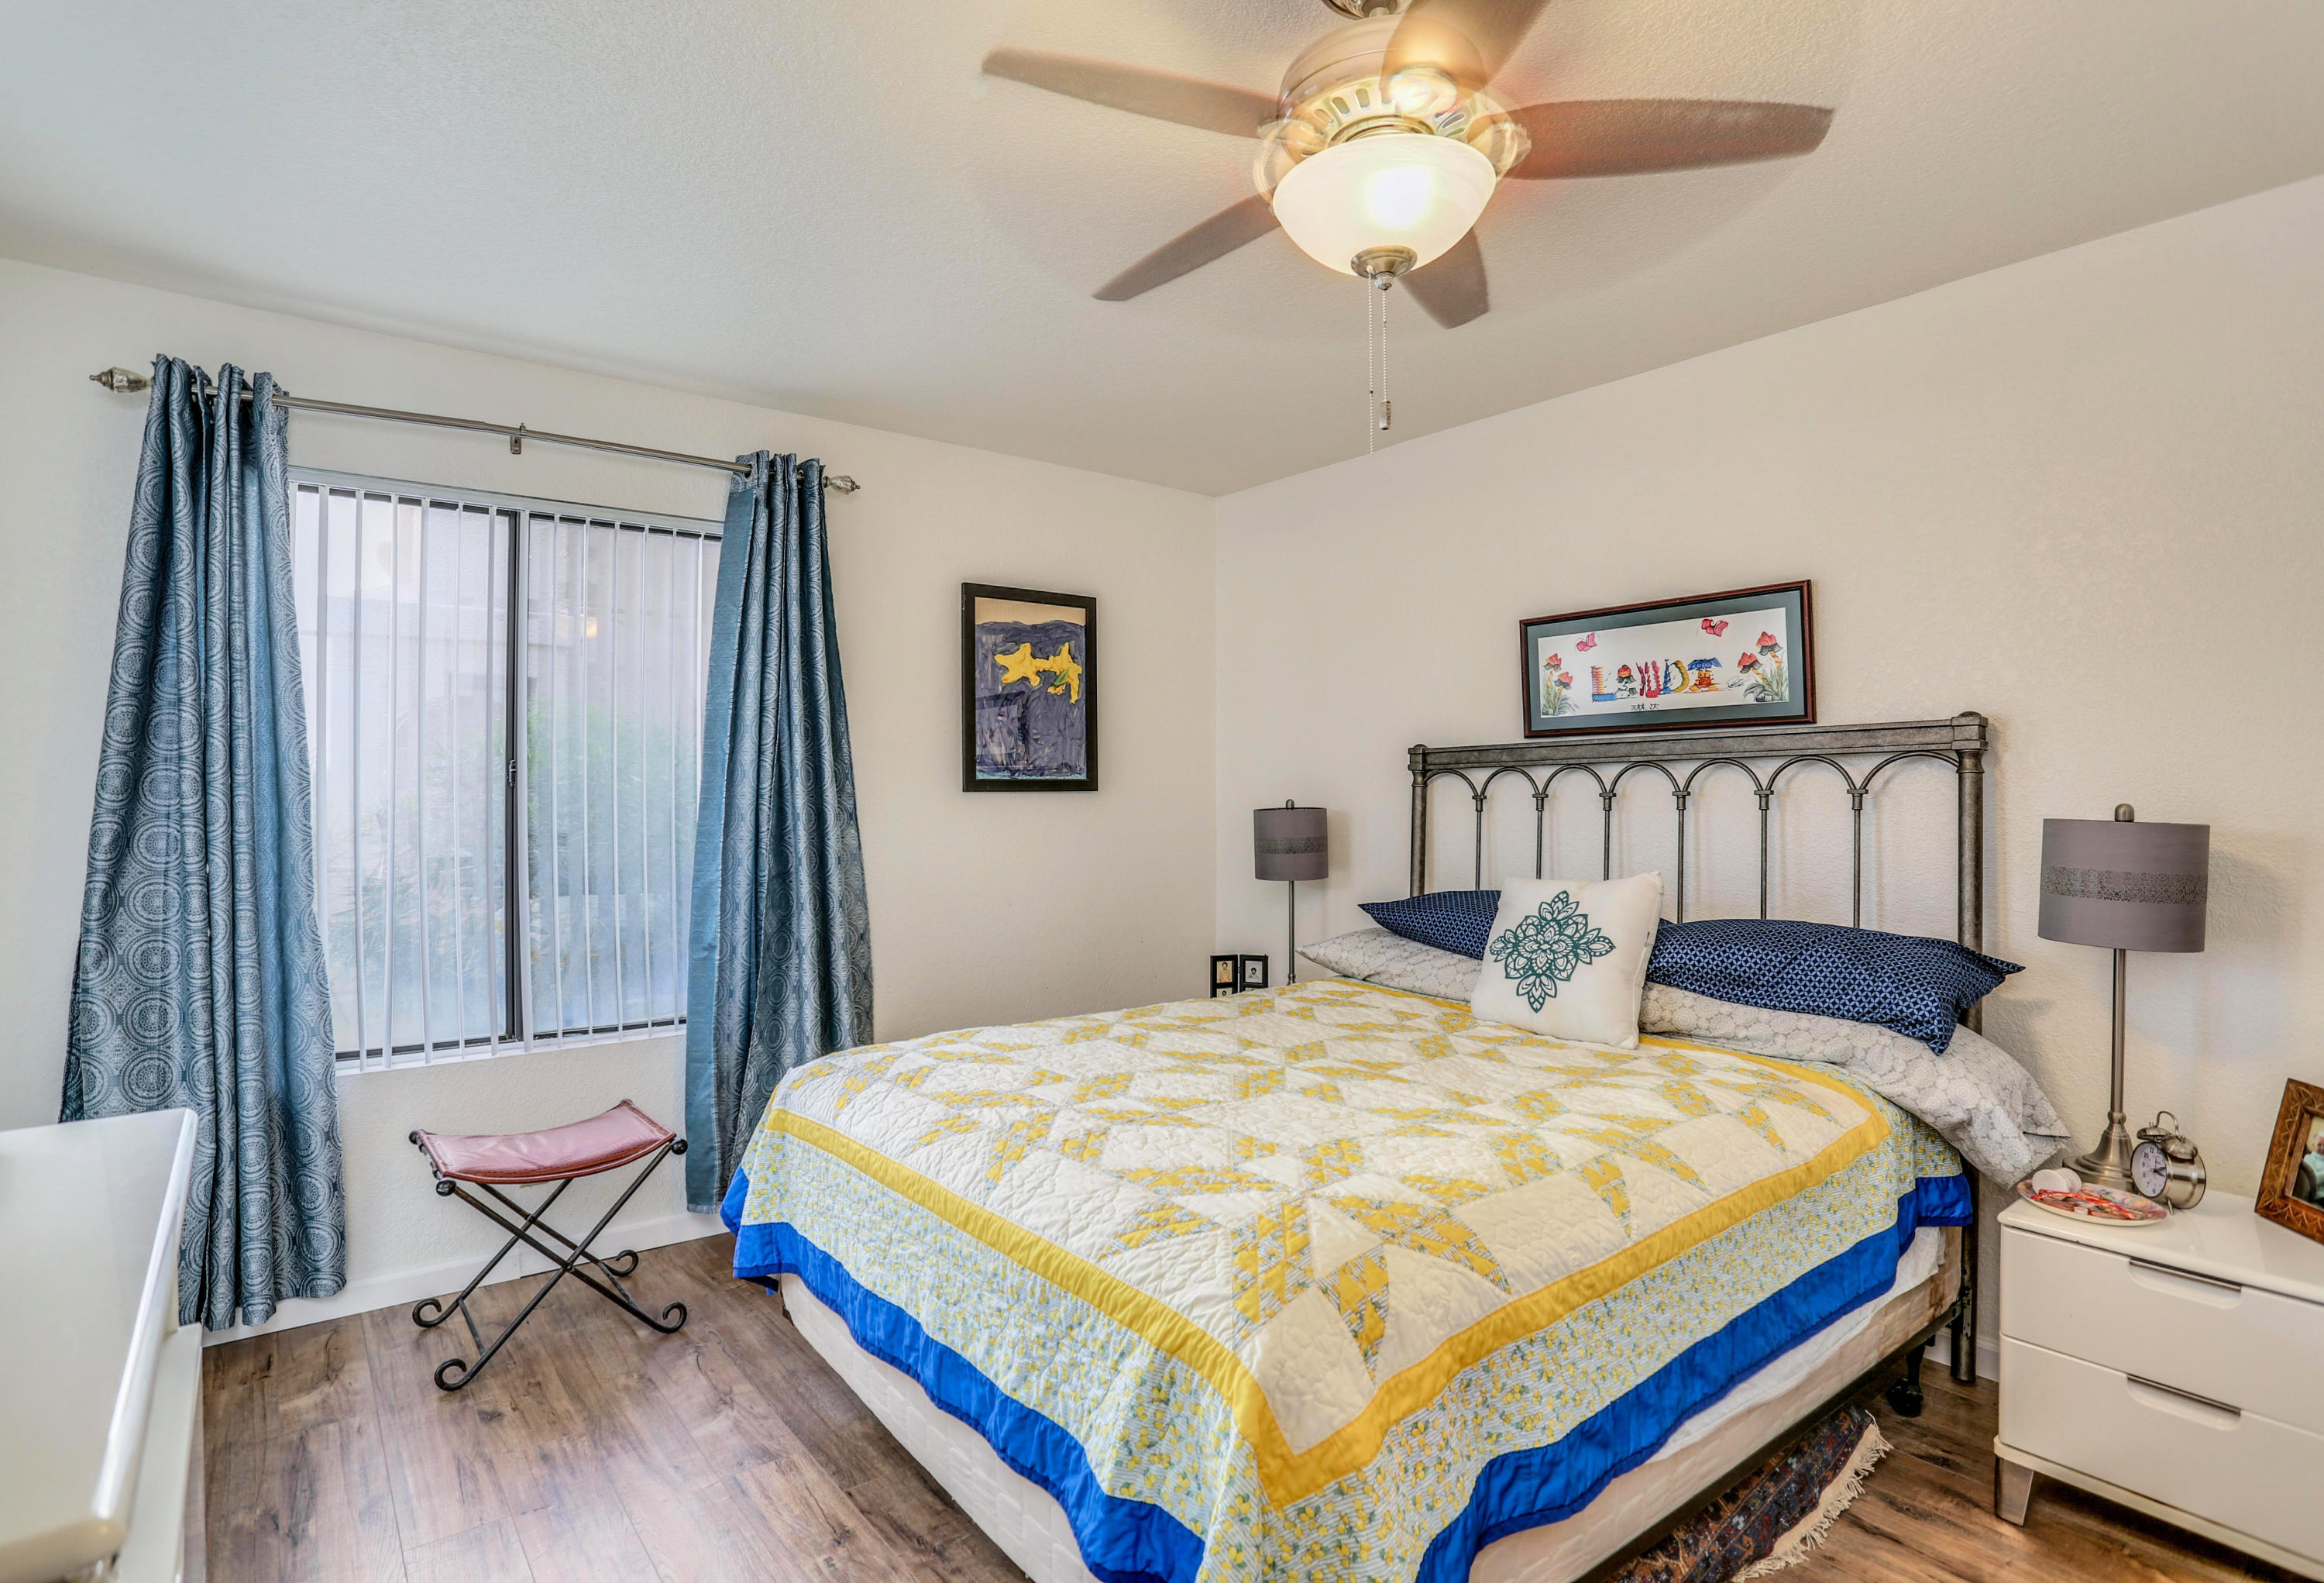 35200 Cathedral Canyon Drive, Cathedral City, California 92234, 1 Bedroom Bedrooms, ,2 BathroomsBathrooms,Residential,Sold,35200 Cathedral Canyon Drive,219030624